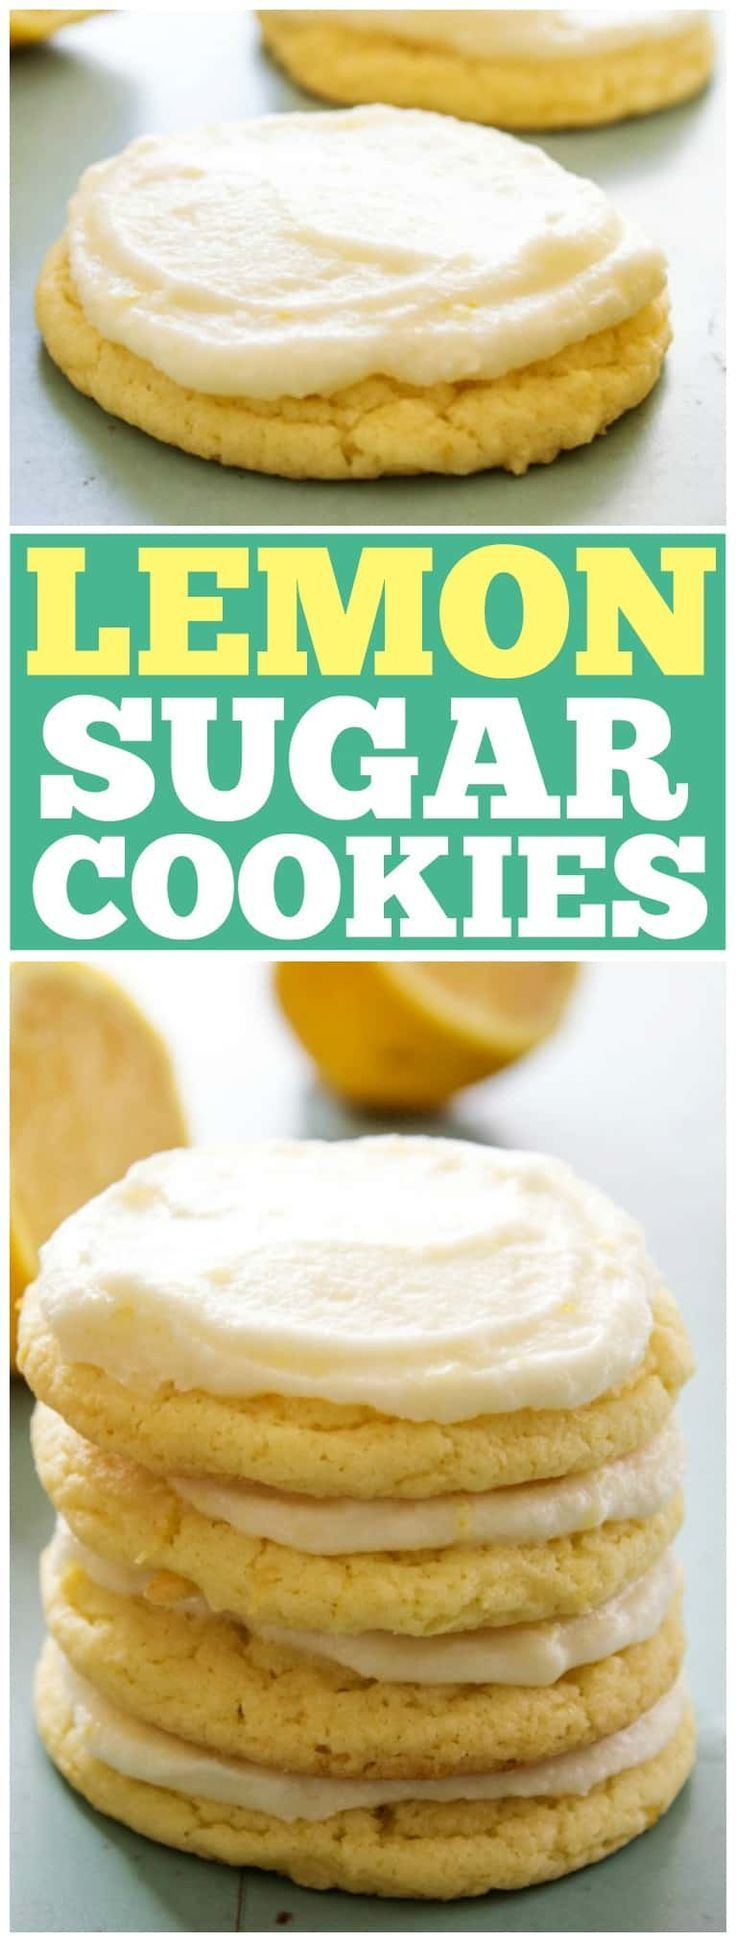 LEMON SUGAR COOKIES - A sweet & slightly tart twist on your classic sugar cookie. These soft & chewy lemon cookies will soon be a cookie jar favorite. #lemon #sugar #sugarcookies #adashofsanity